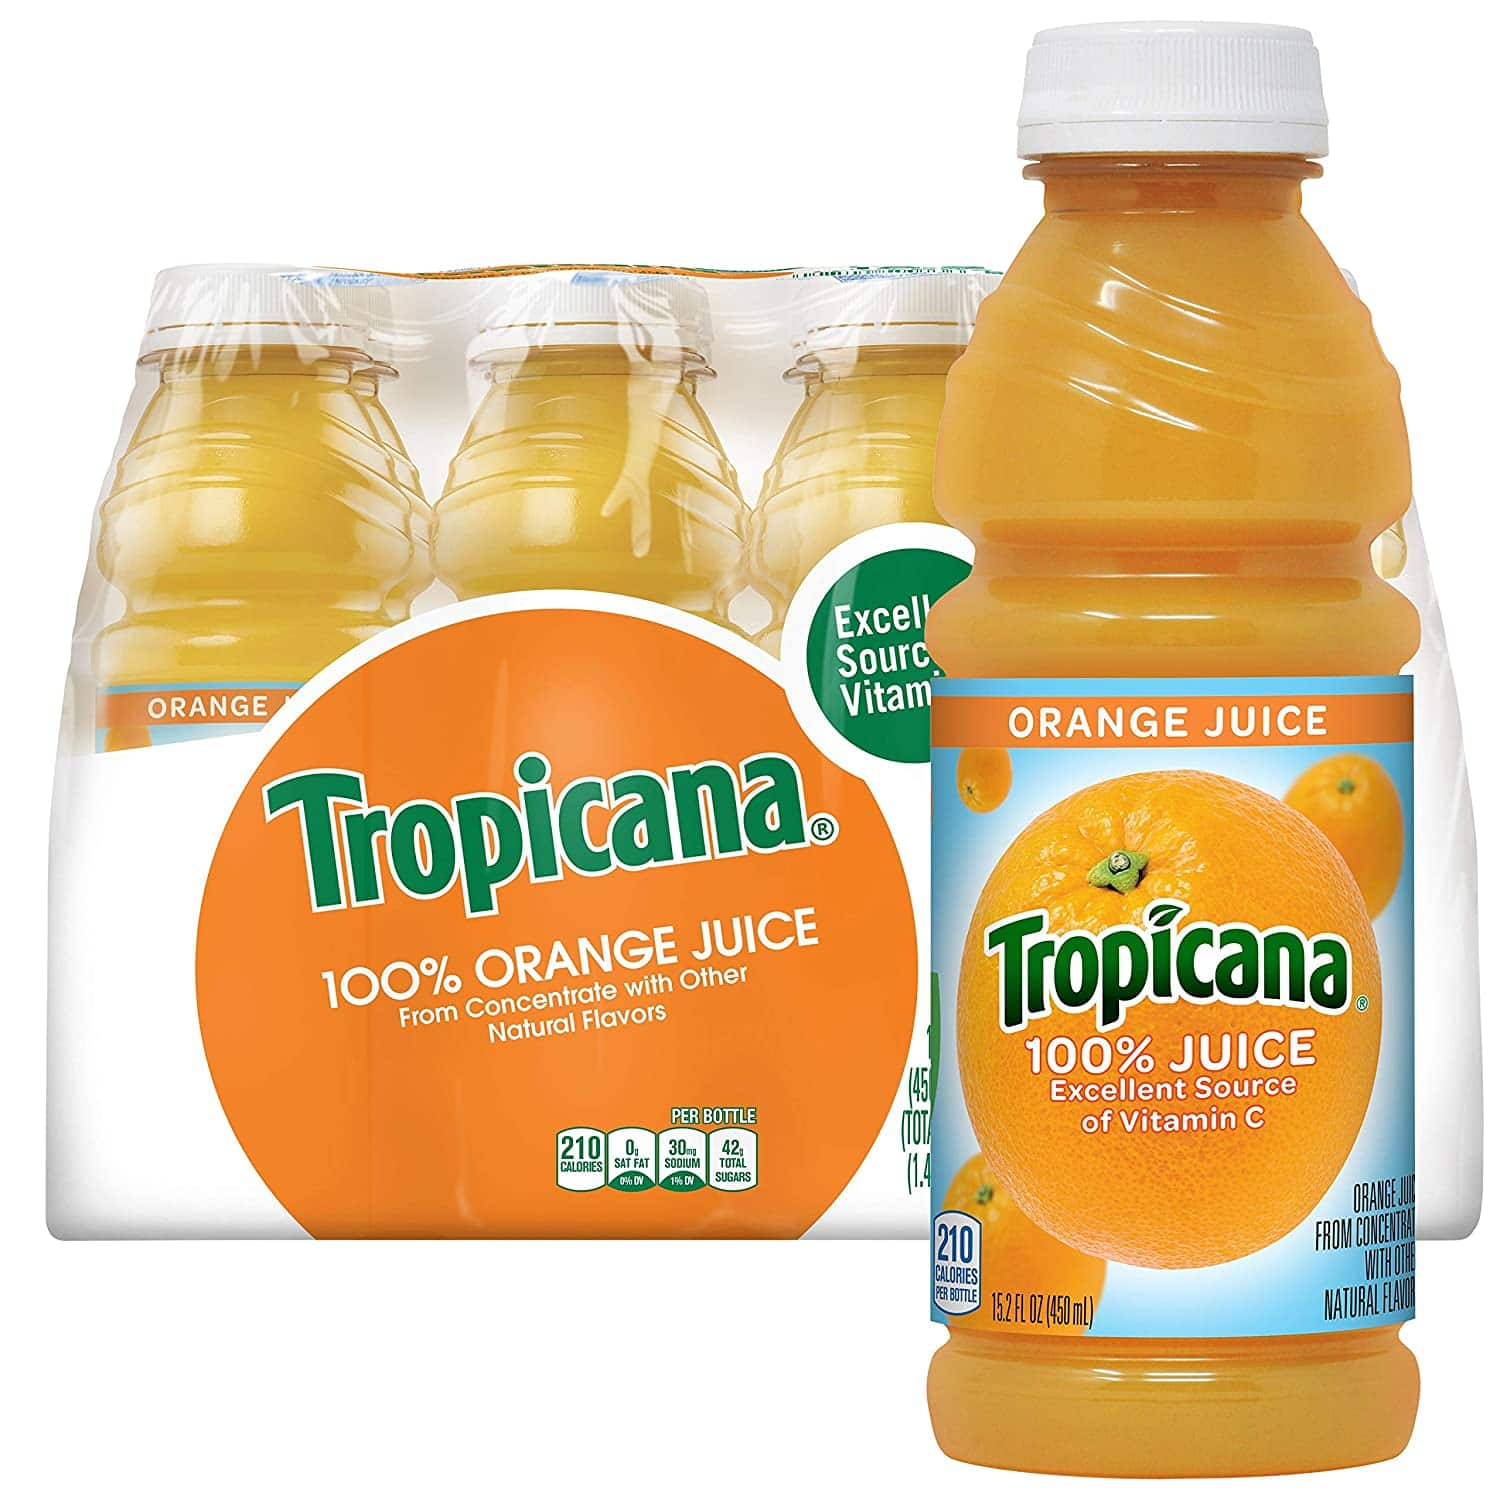 Tropicana Orange Juice, 15.2 Fl Oz Bottles, Pack of 12 -- $12.33